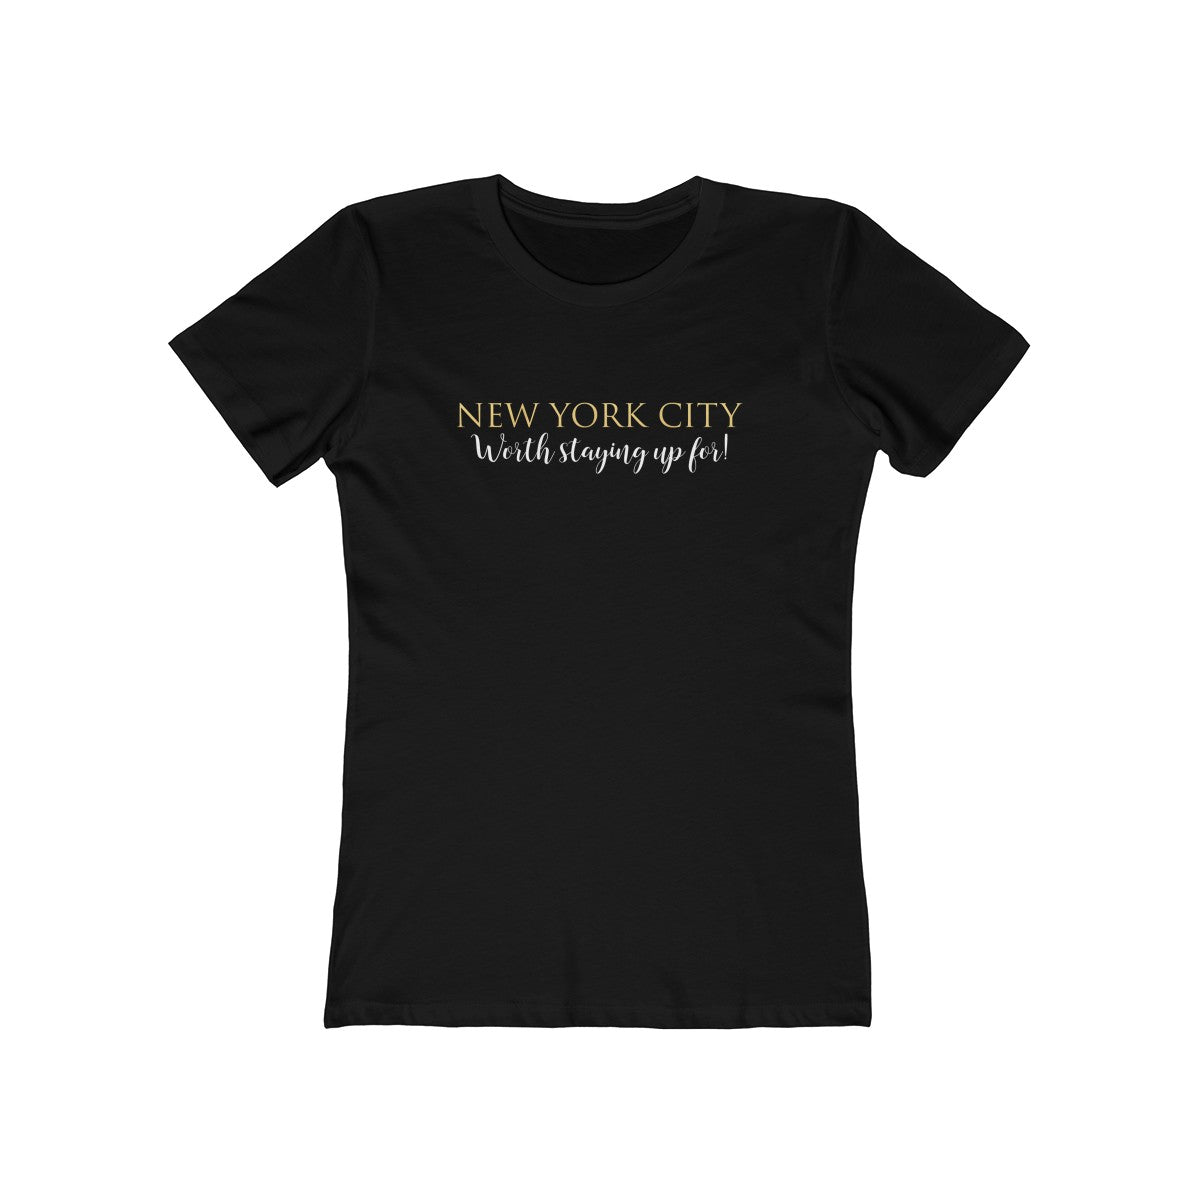 "New York City "" Worth Staying up for!"" -Women's The Boyfriend Tee"